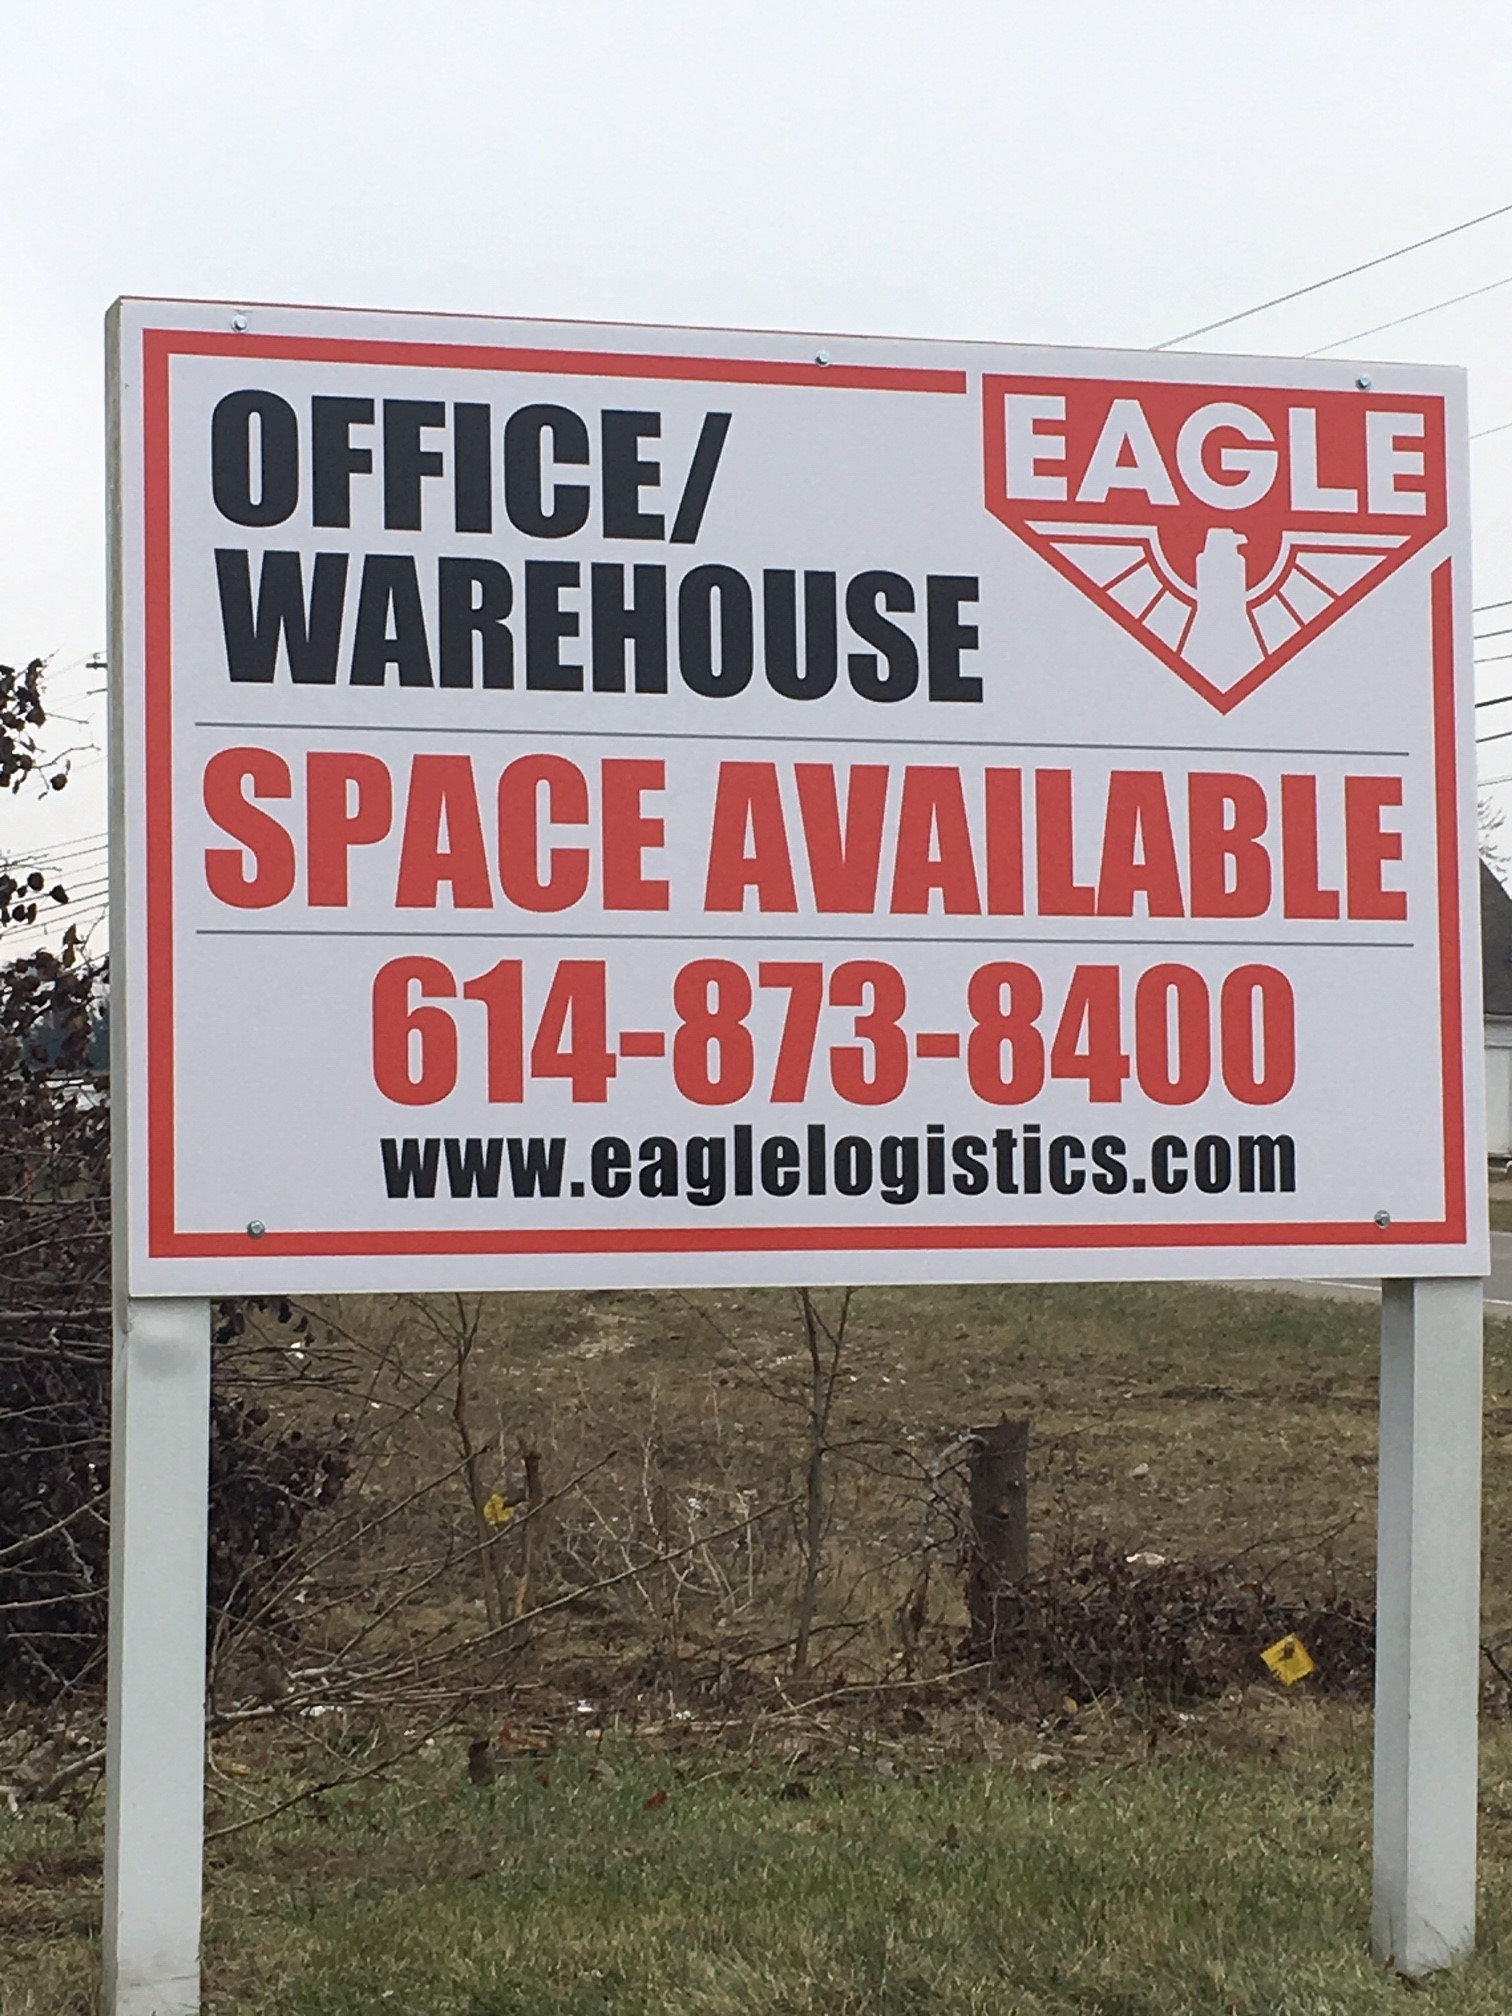 Eagle Warehouse & Logistics image 8